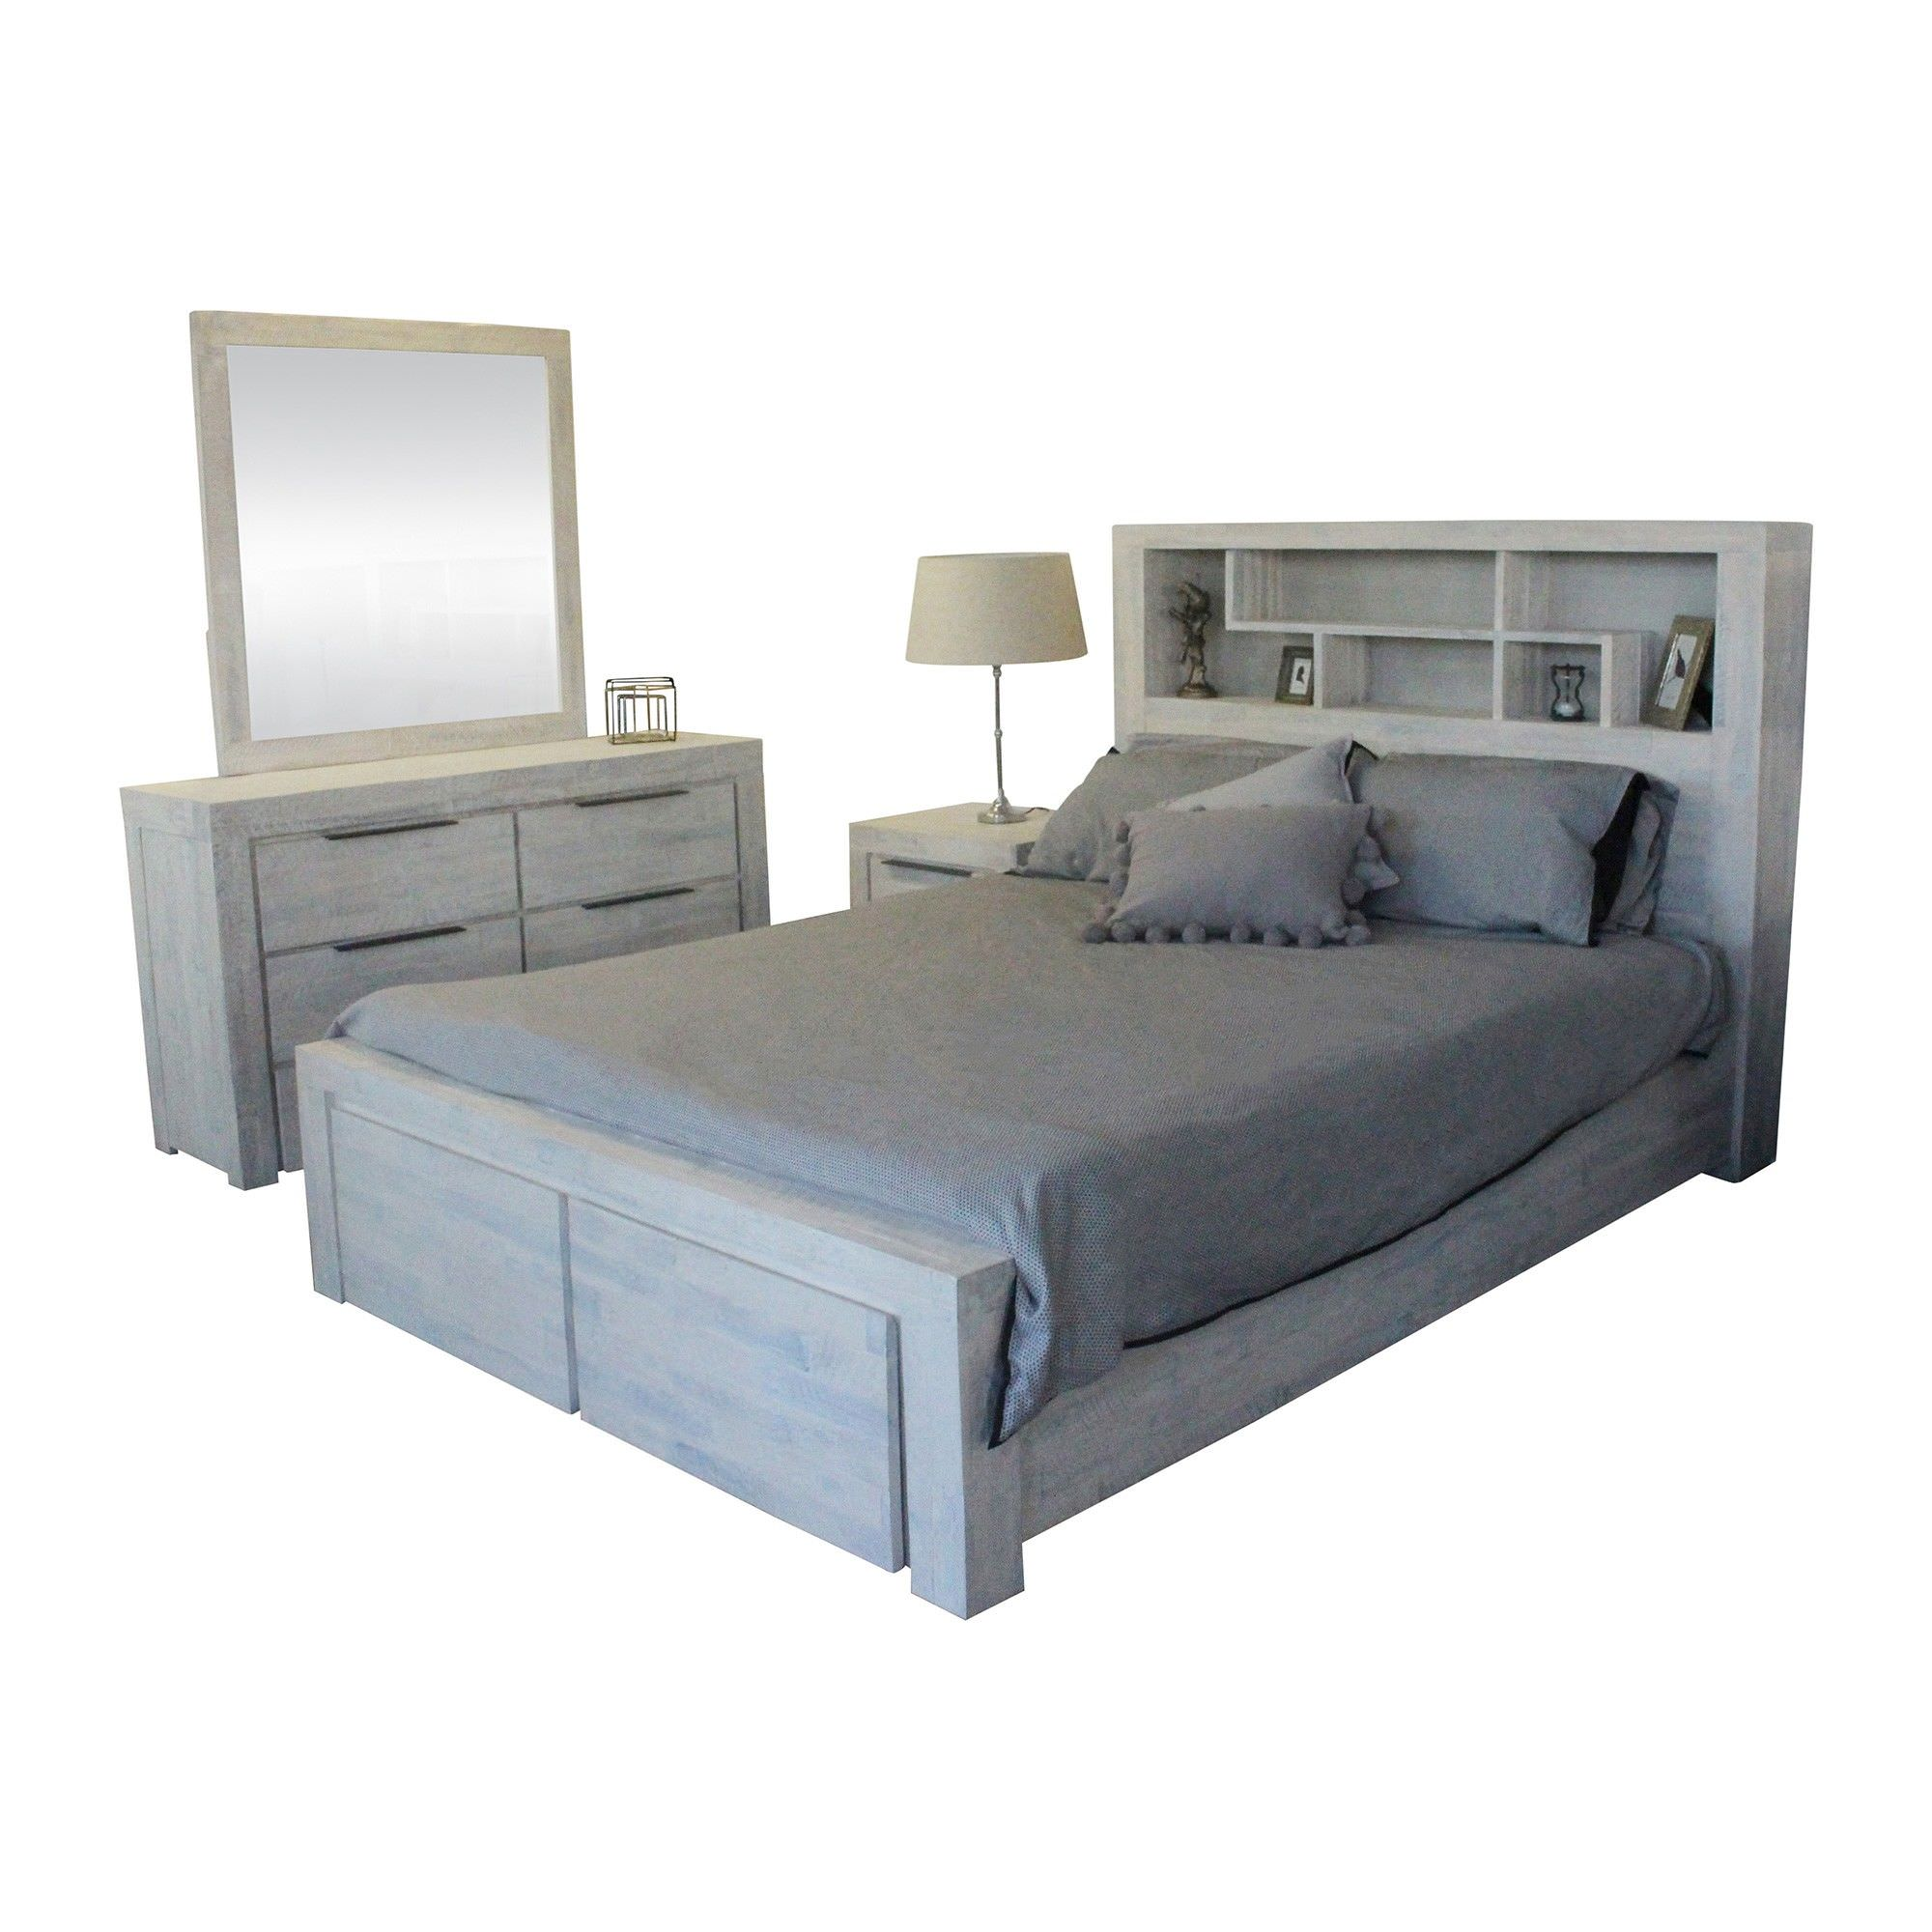 Romford 4 Piece Acacia Timber Bedroom Dresser Suite with Bookcase Bed, Queen